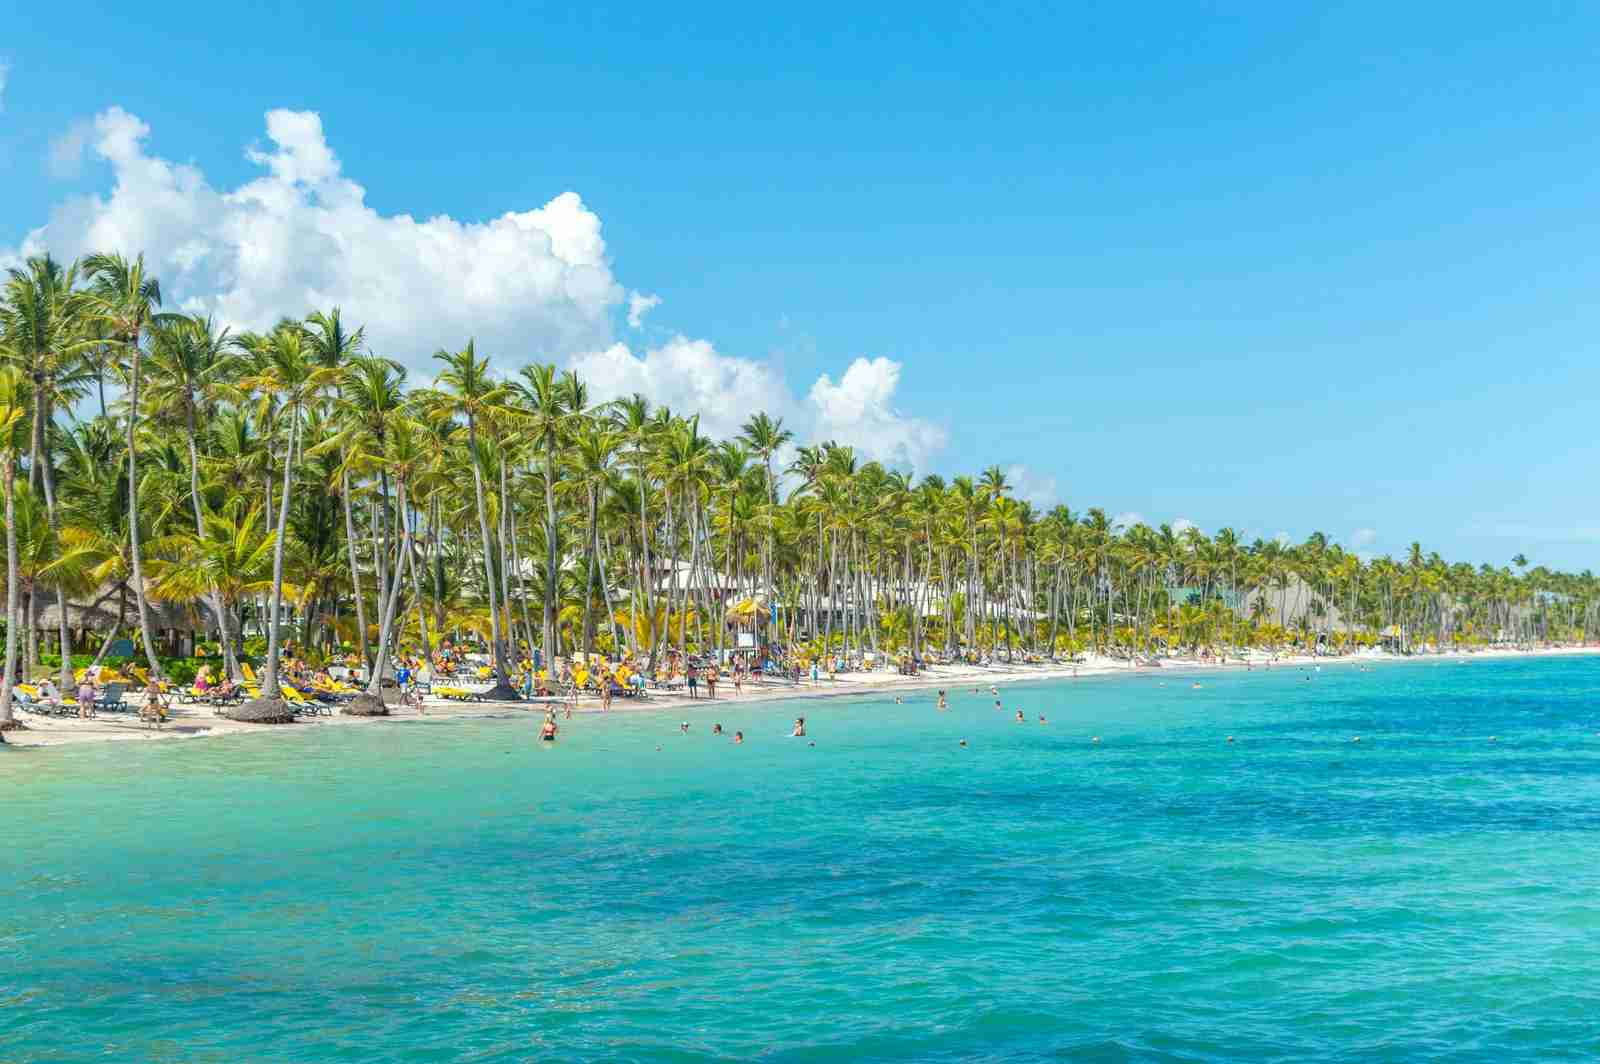 Punta Cana in the Dominican Republic. (Photo by bakerjarvis/Getty Images)